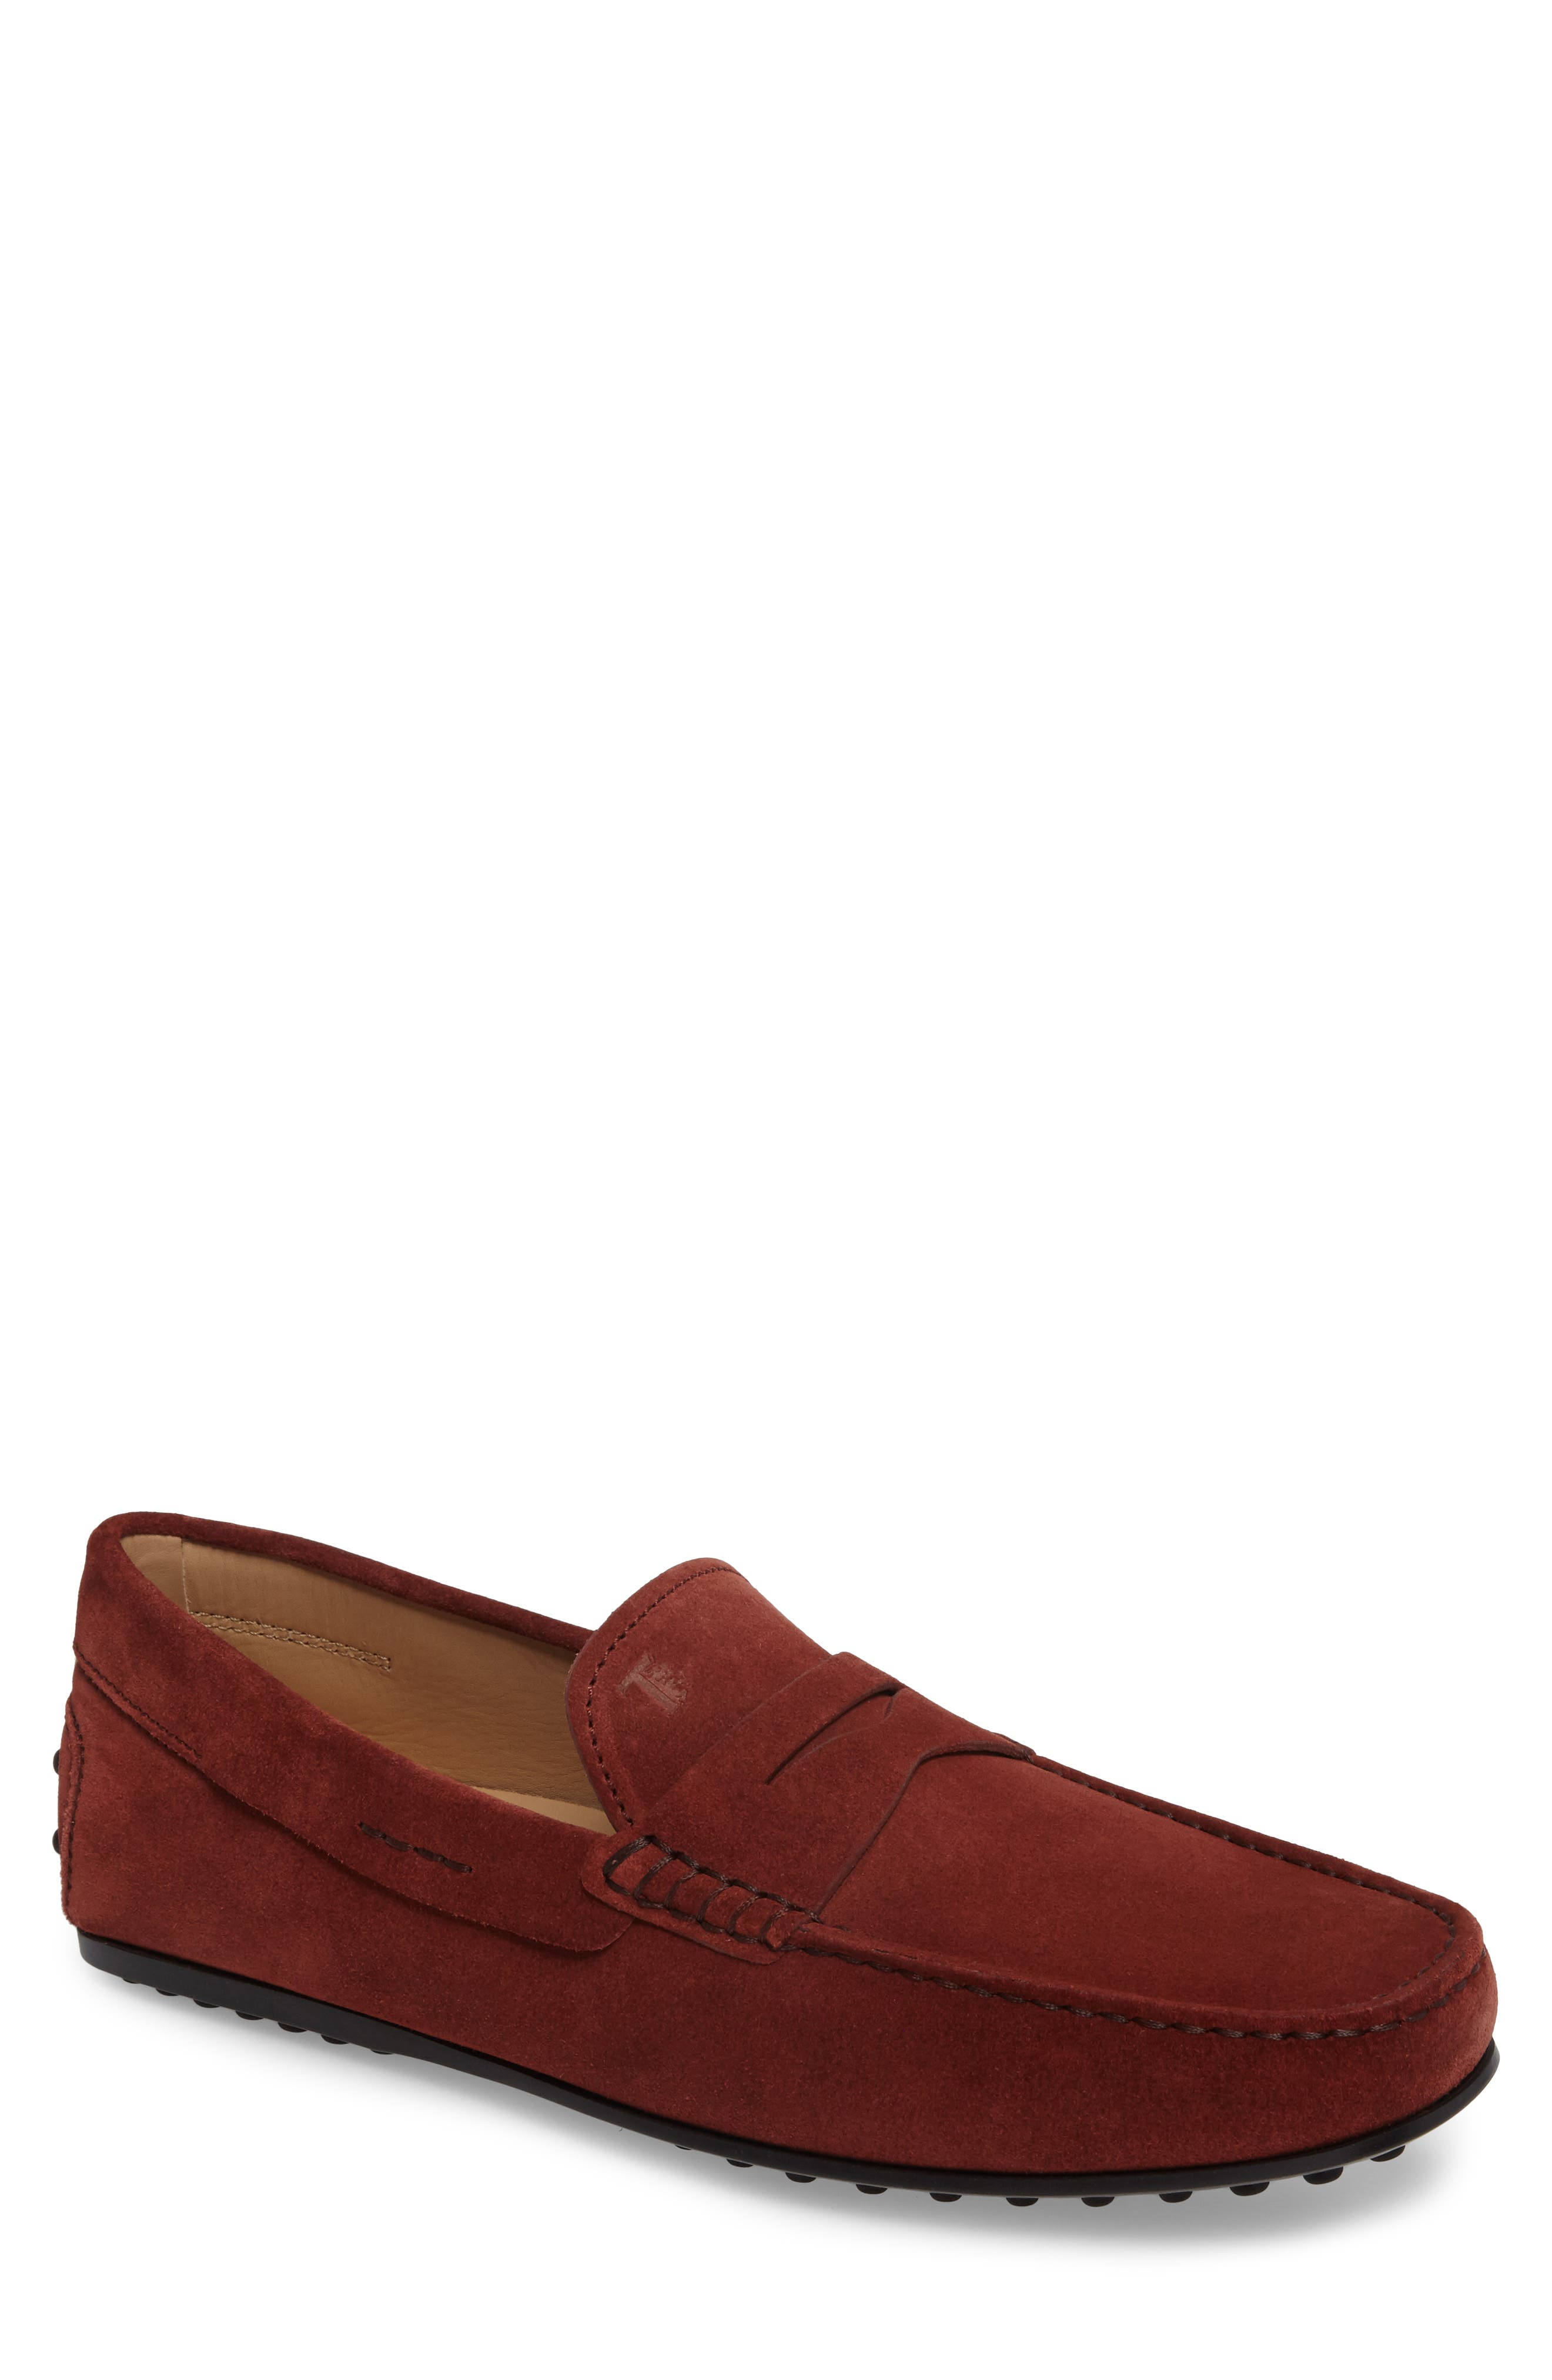 'City' Penny Driving Shoe,                         Main,                         color, Burgundy Suede